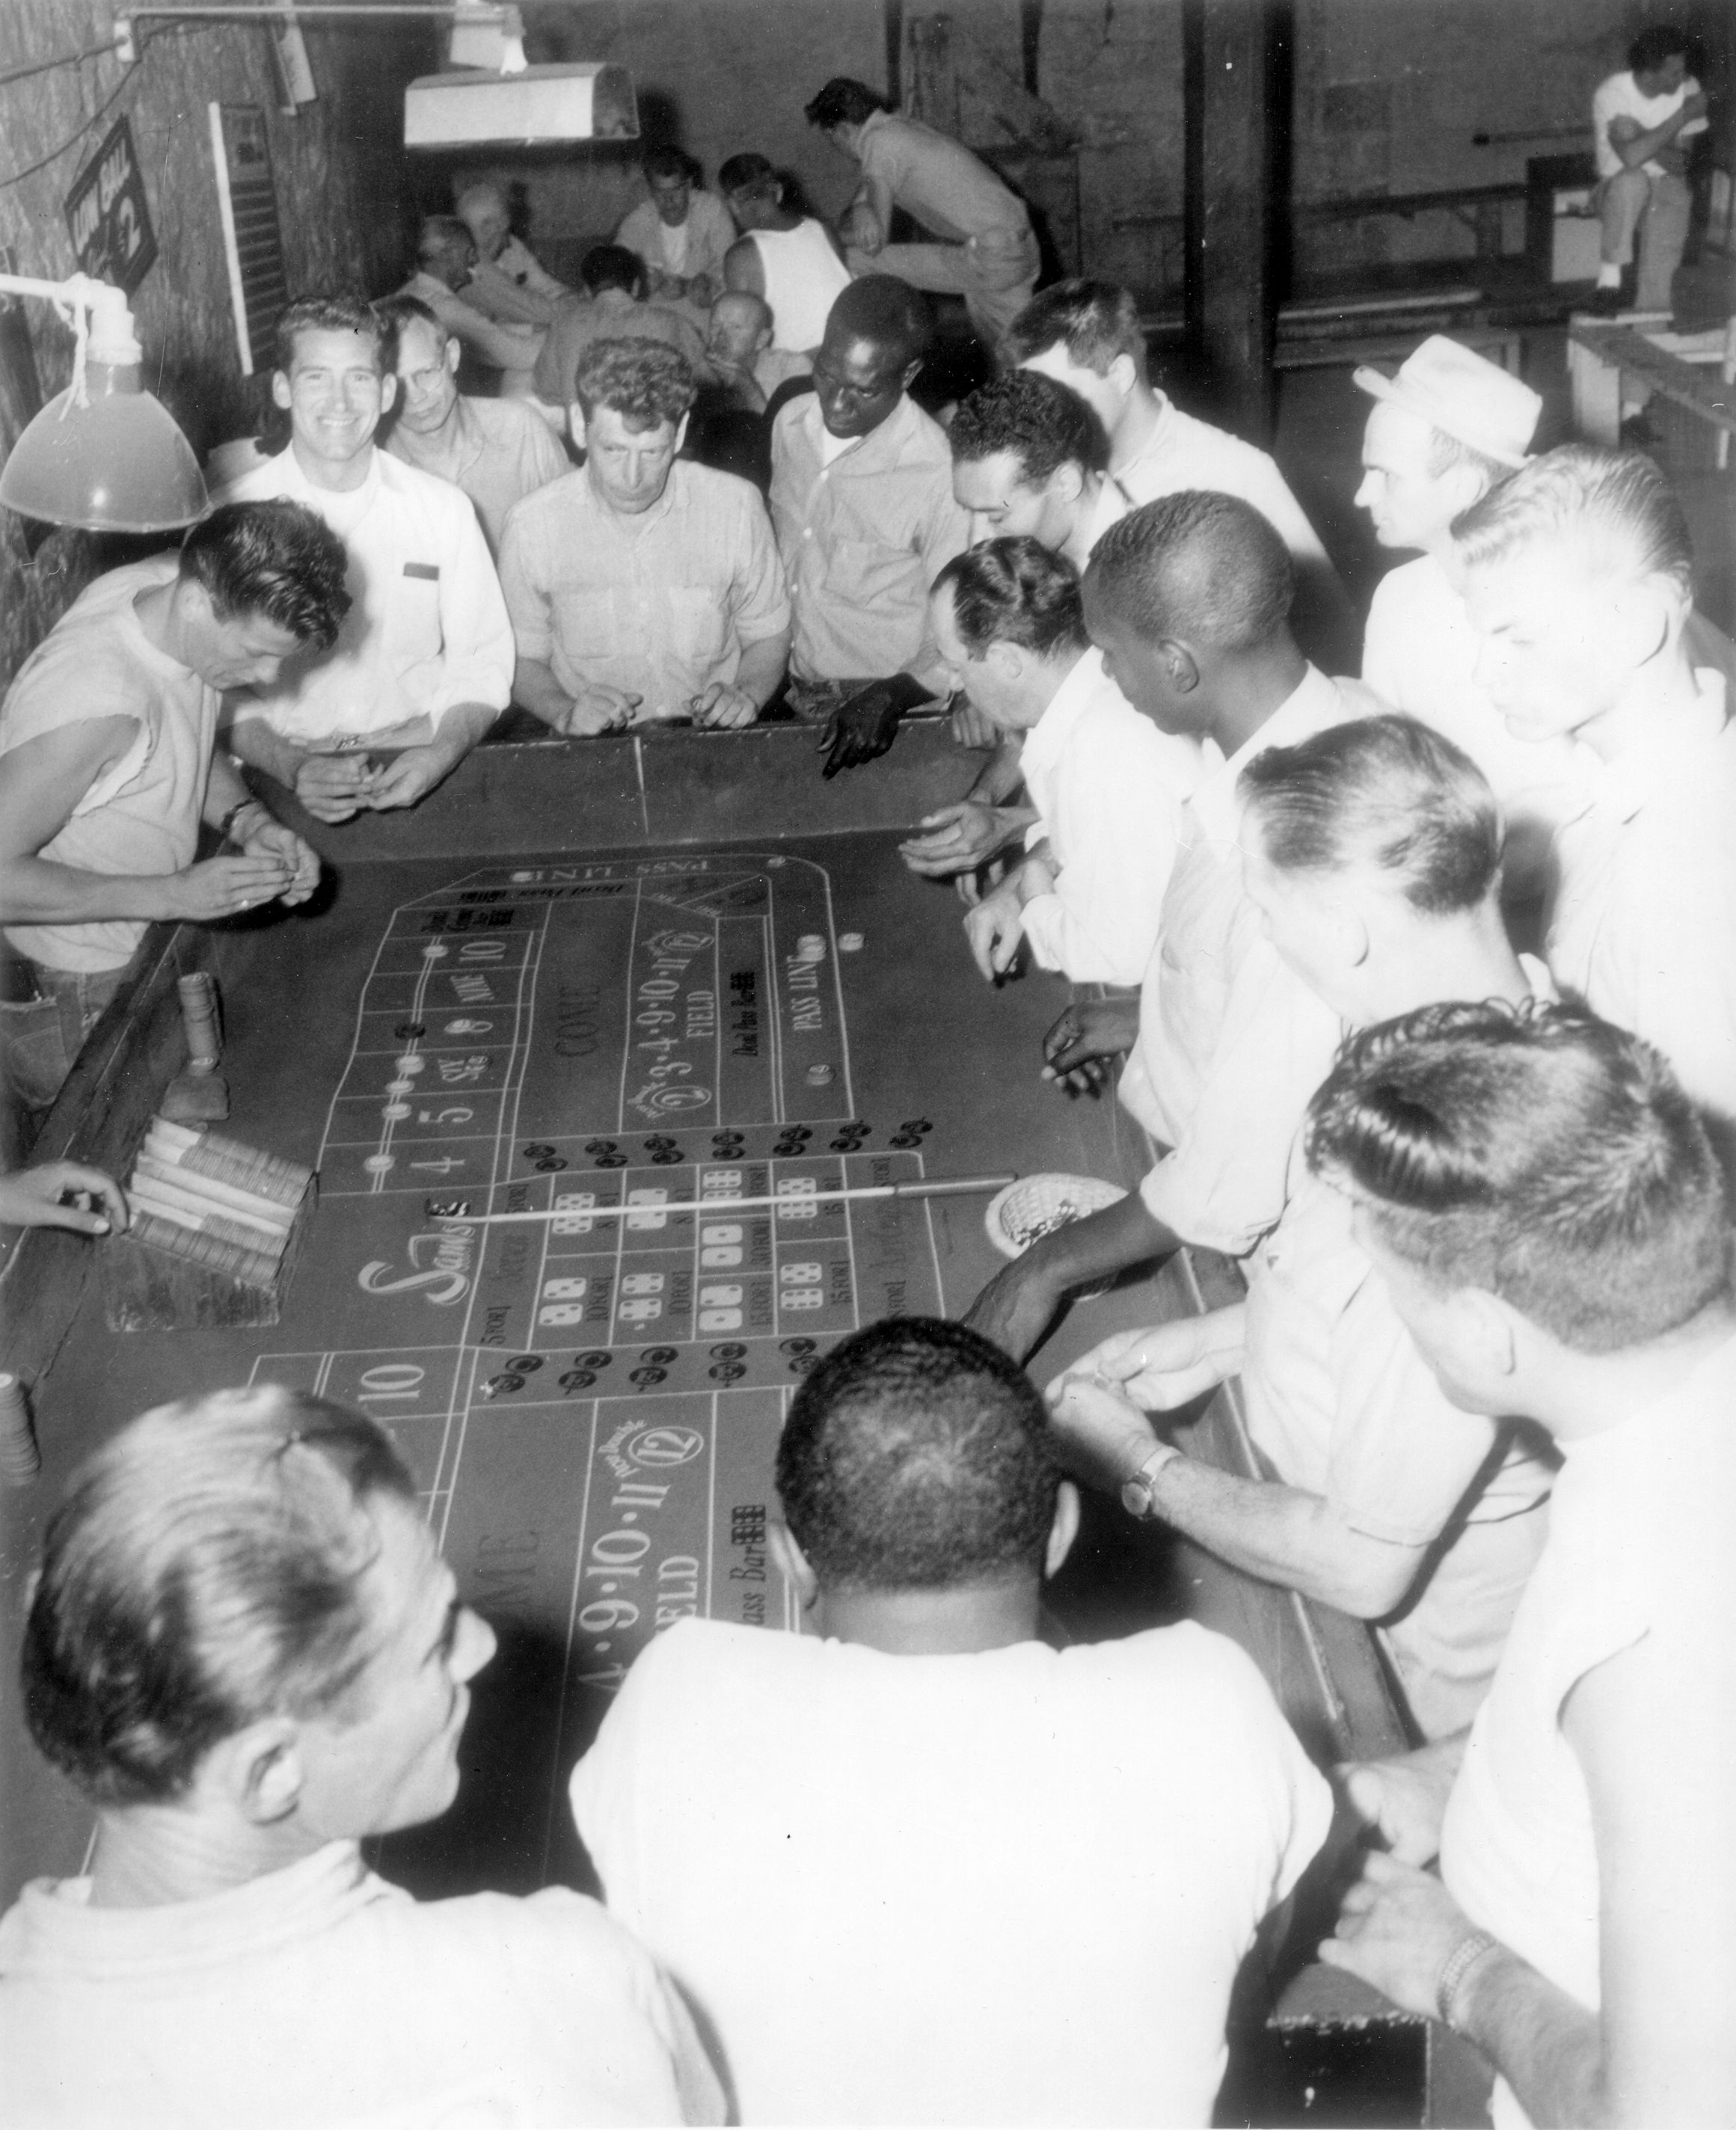 Prisoners enjoying a table game from the in-house casino